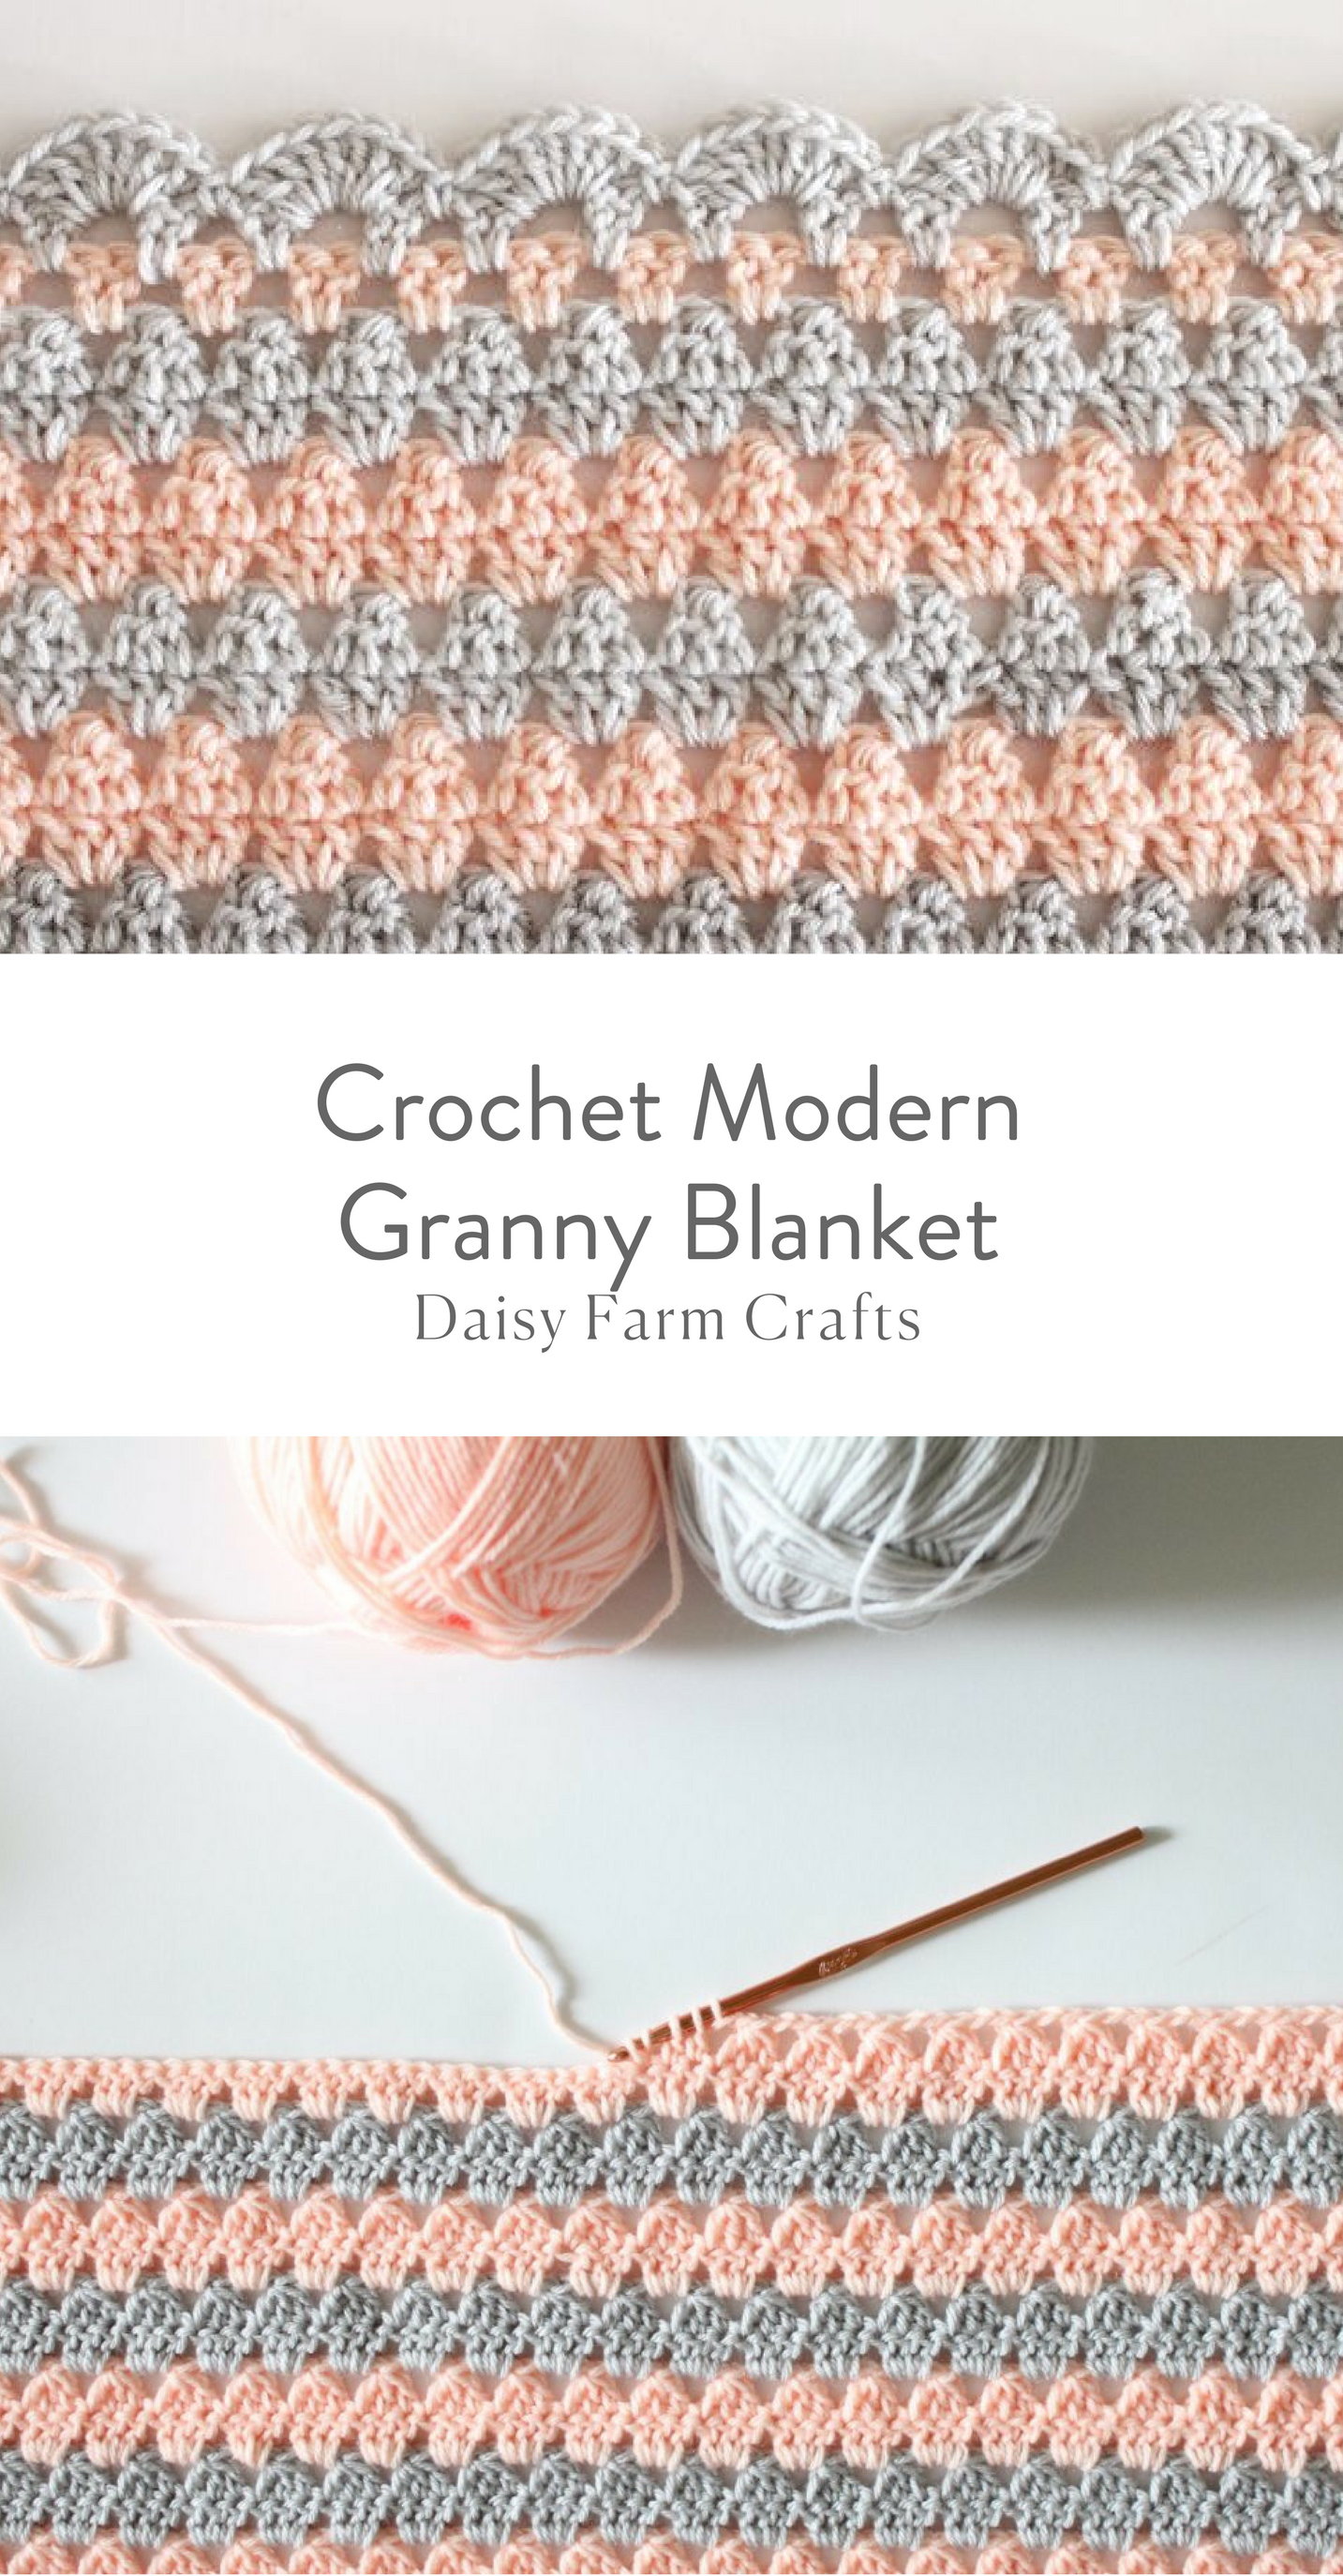 Free Pattern - Crochet Modern Granny Blanket | Crochet patterns ...